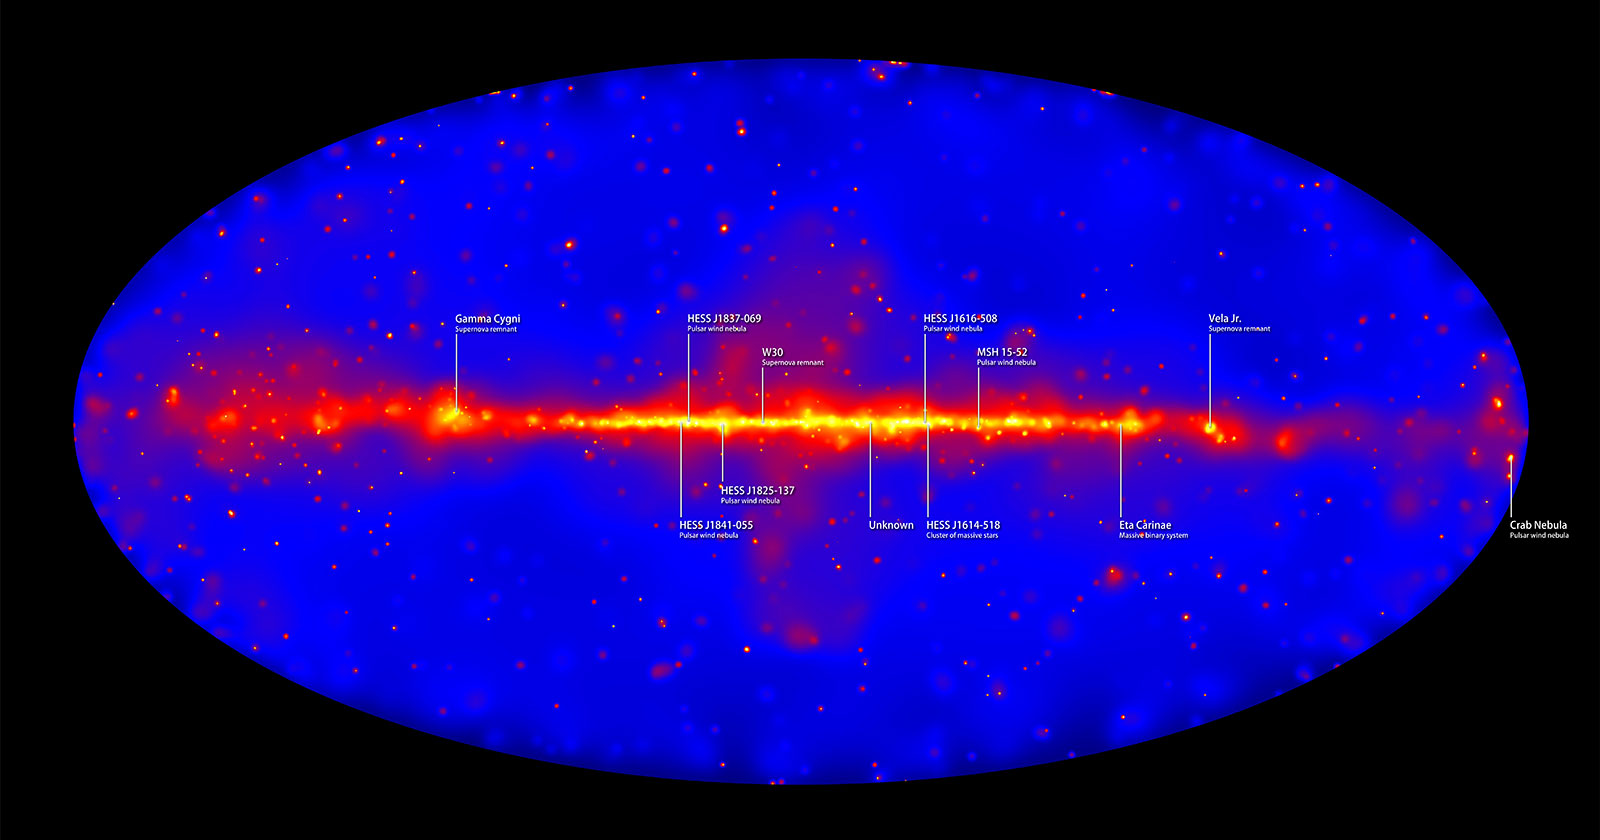 Band of bright red light representing high energy concentrations in our galaxy with labels showing specific points.